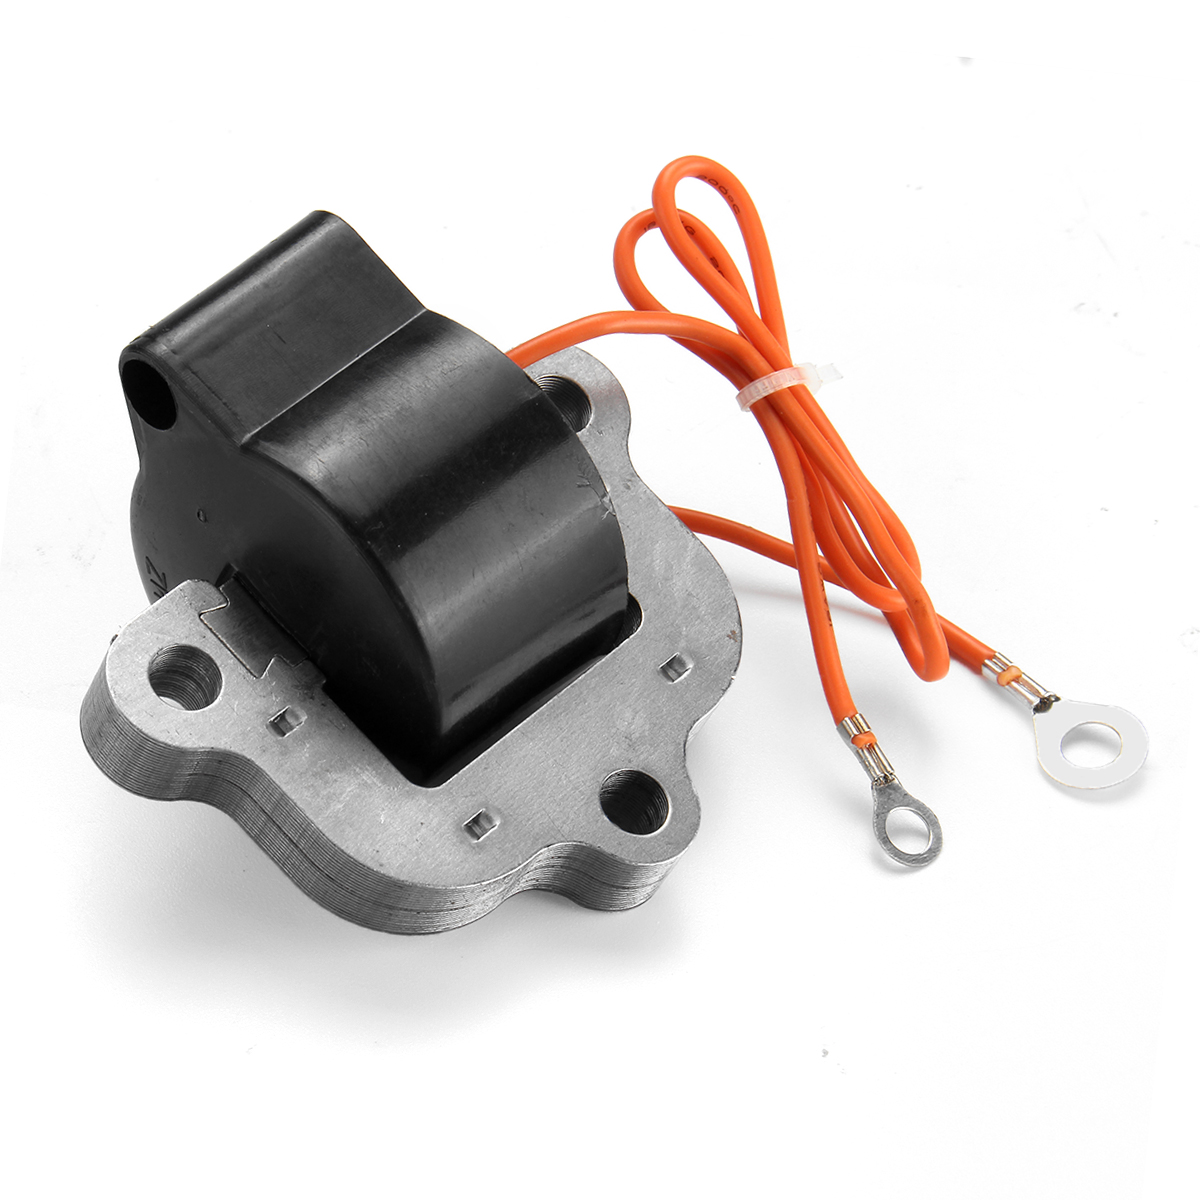 New 1 Pc Ignition Coil For 18-20-25-35HP Johnson Evinrude Ignition Coil  18-5172 581786 581370 502881